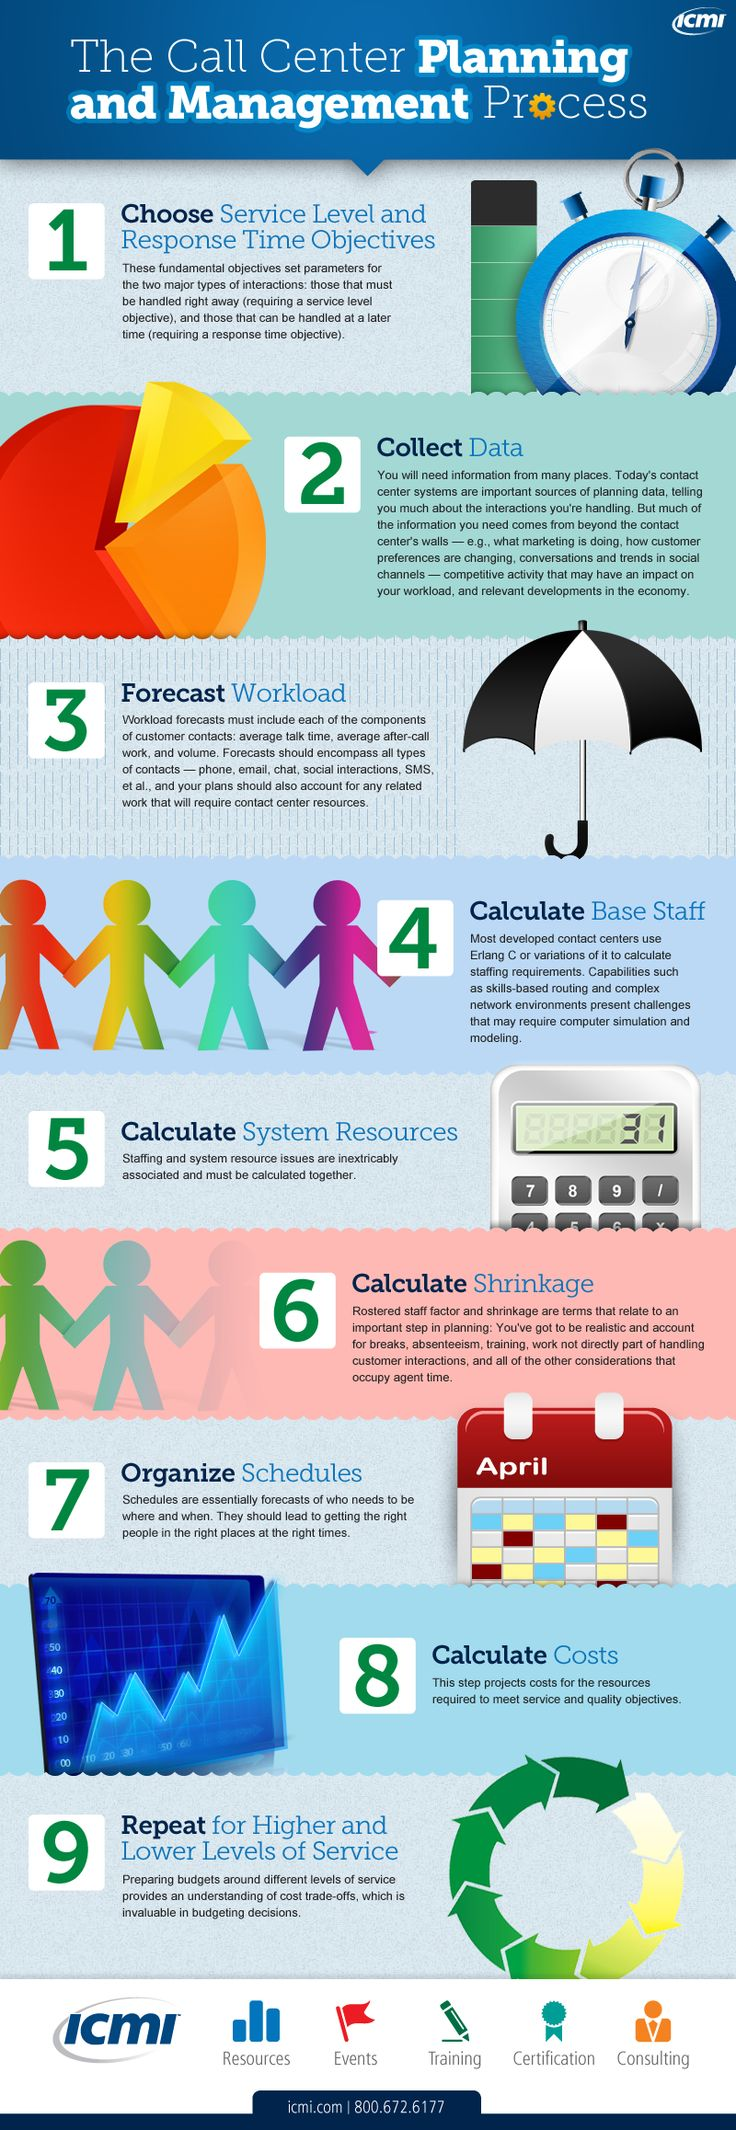 Call center management is as easy as 1, 2, 3, (4, 5, 6…). These nine fundamental steps encapsulate the basics for making sure that your center should be following in order to be properly staffed, scheduled, forecasted and prepared for just about anything. #cctr #custserv #ICMI #customerservice #forecasting #wfm